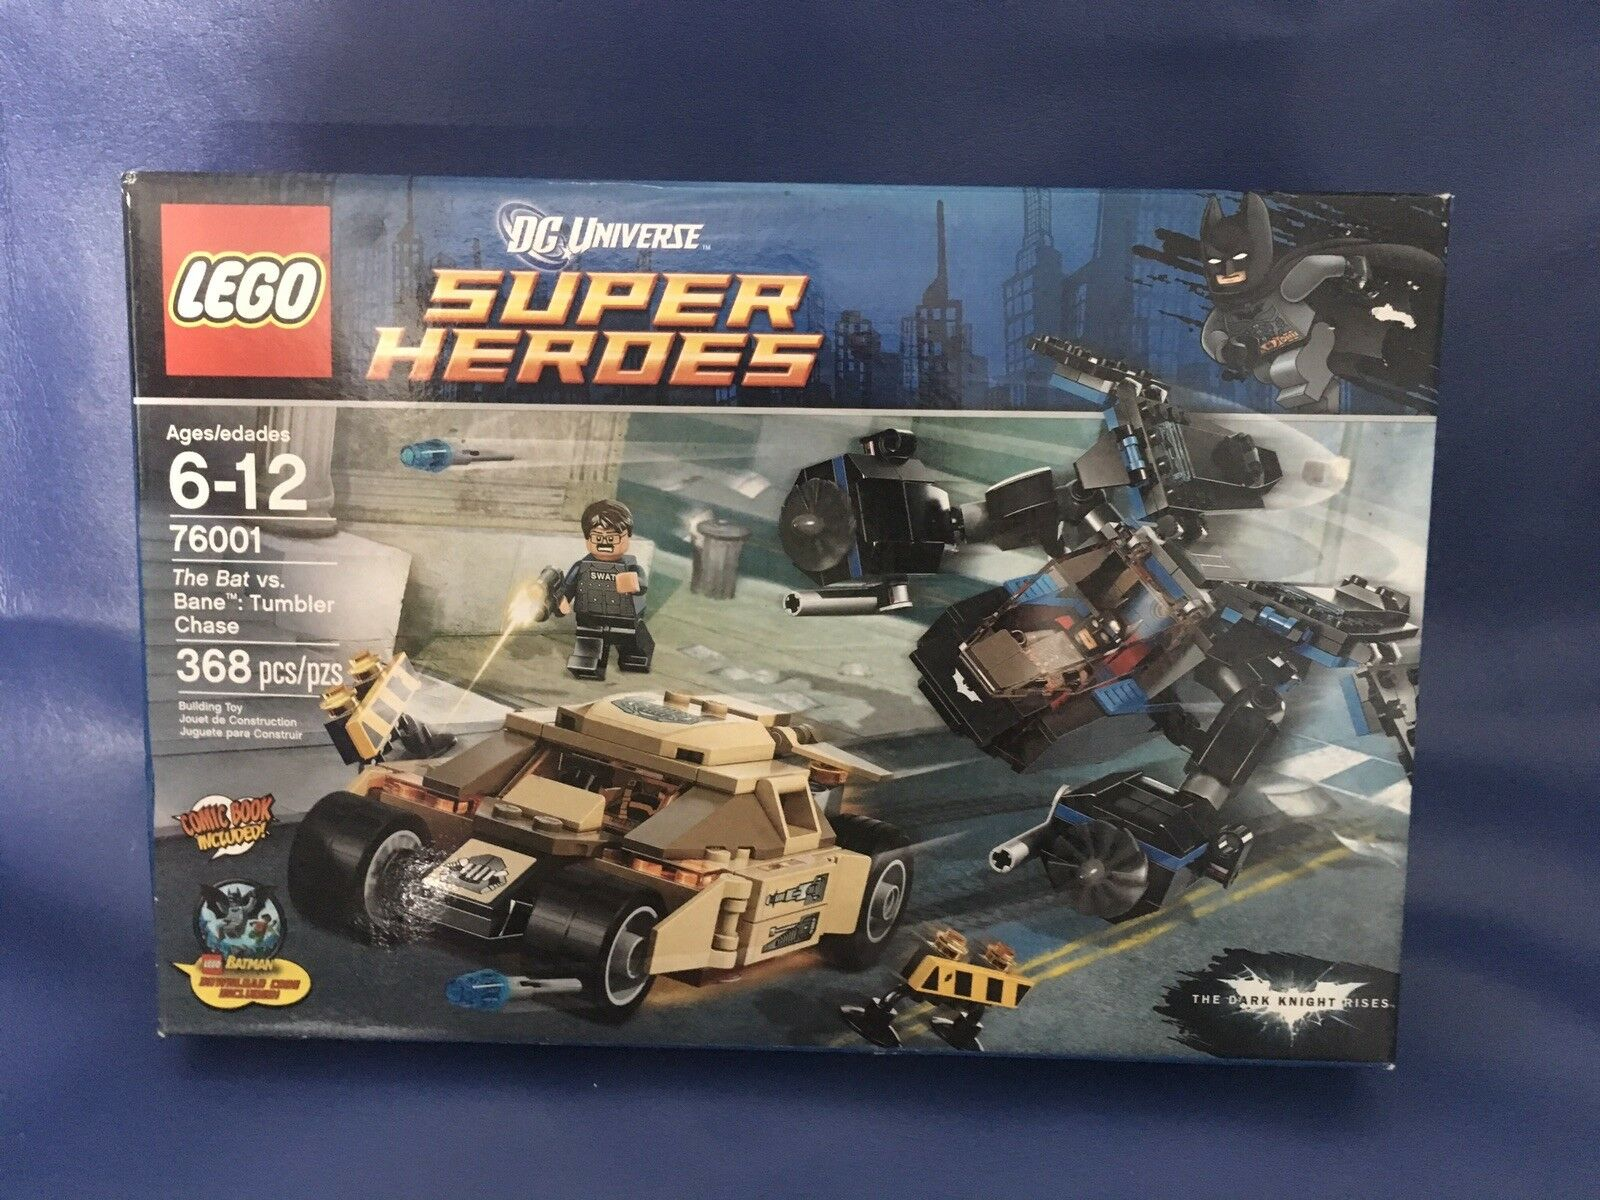 LEGO  DC Universe Super Heroes - The Bat vs. vs. vs. Bane  Tumbler Chase (76001) RETIRED dfc93a